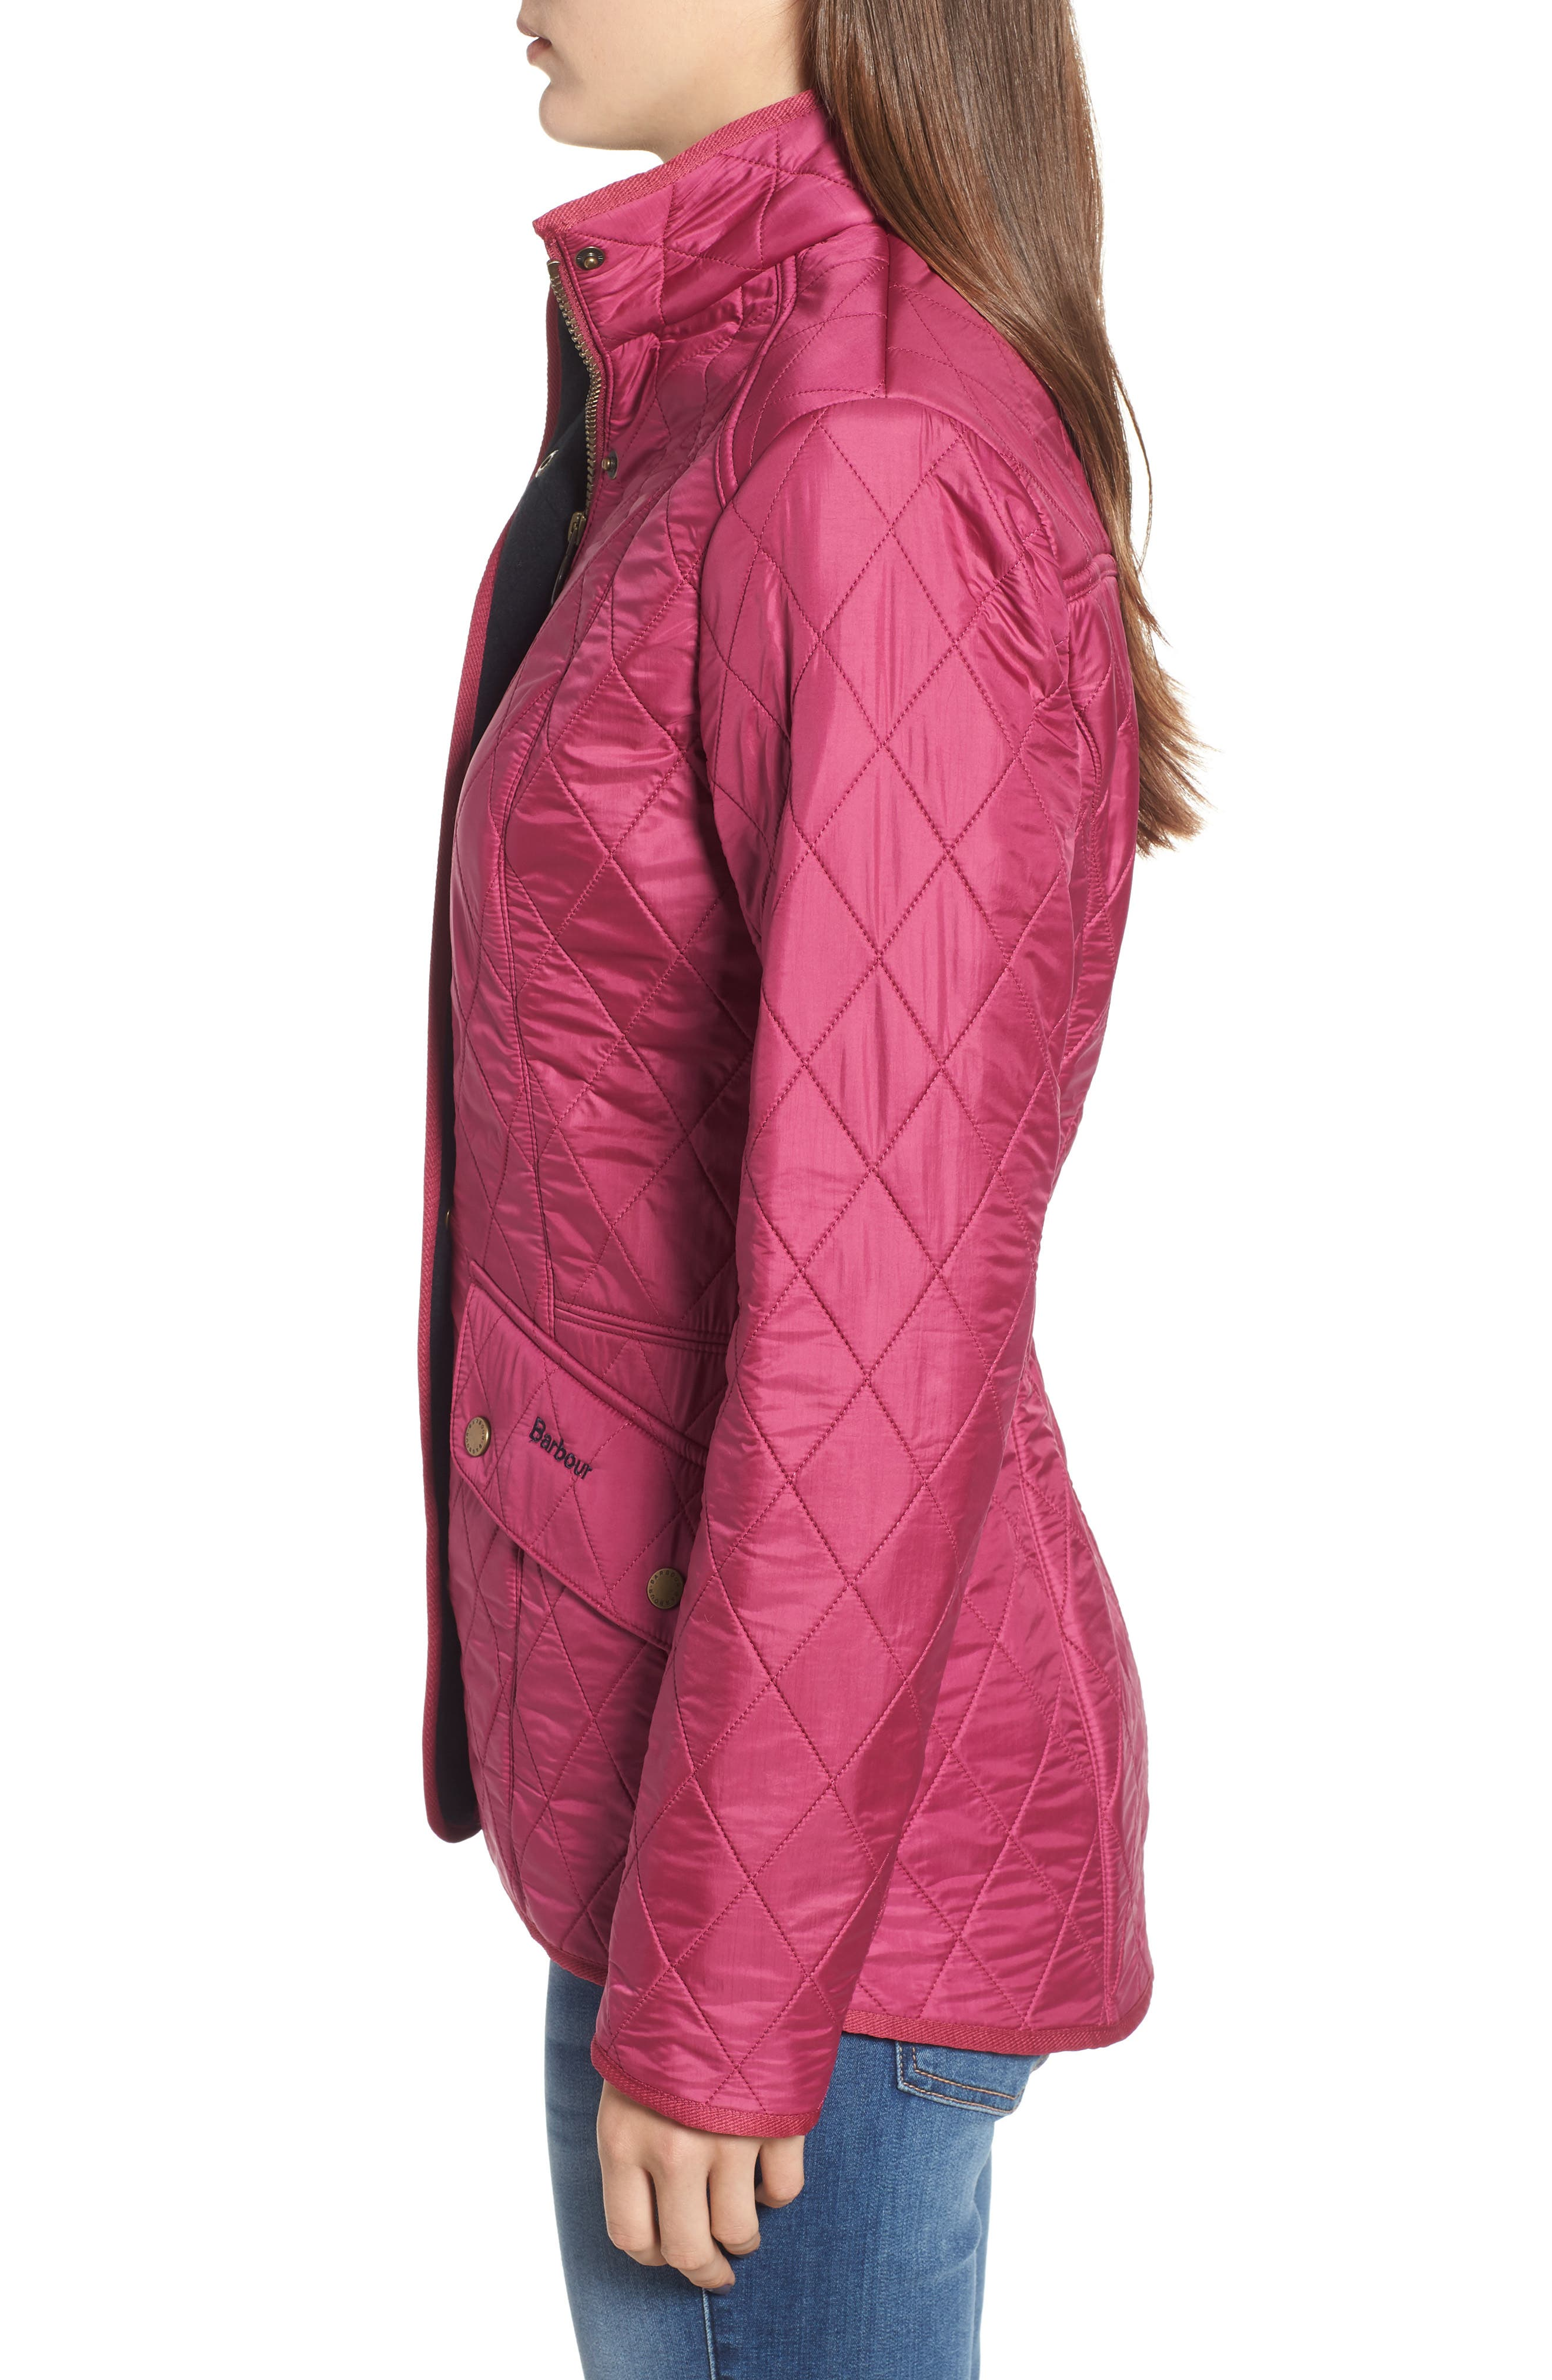 'Cavalry' Quilted Jacket,                             Alternate thumbnail 3, color,                             BERRY PINK / NAVY